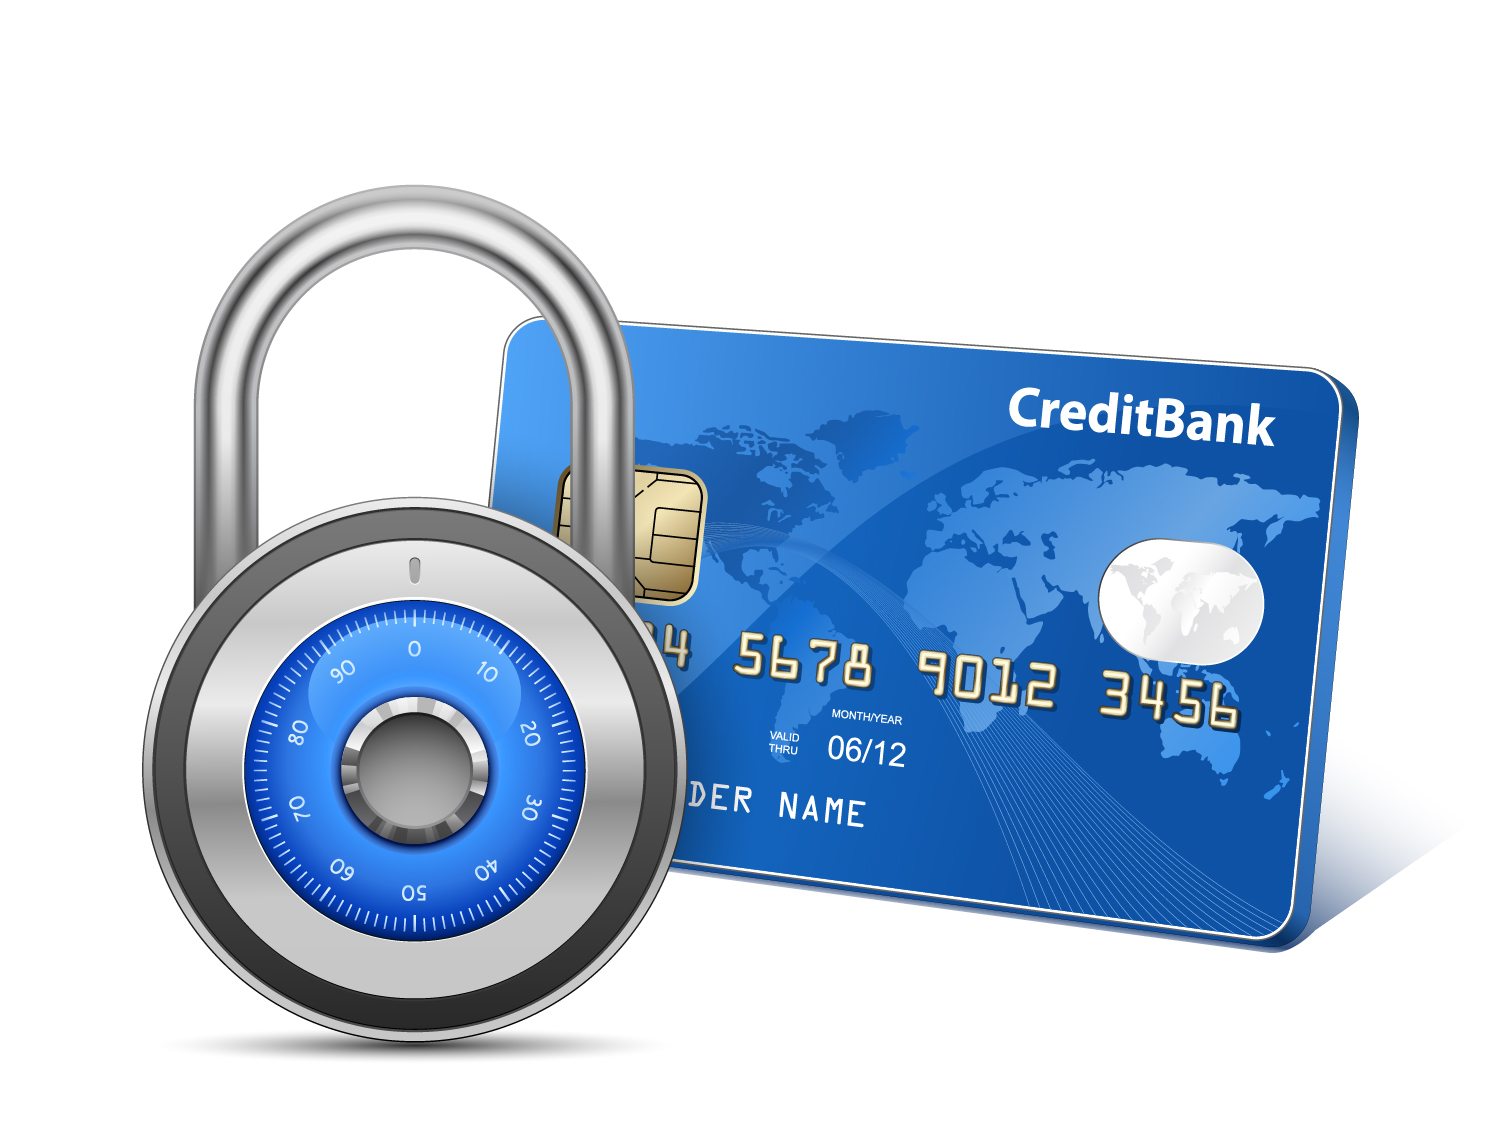 DataLink Secure Payment Methods